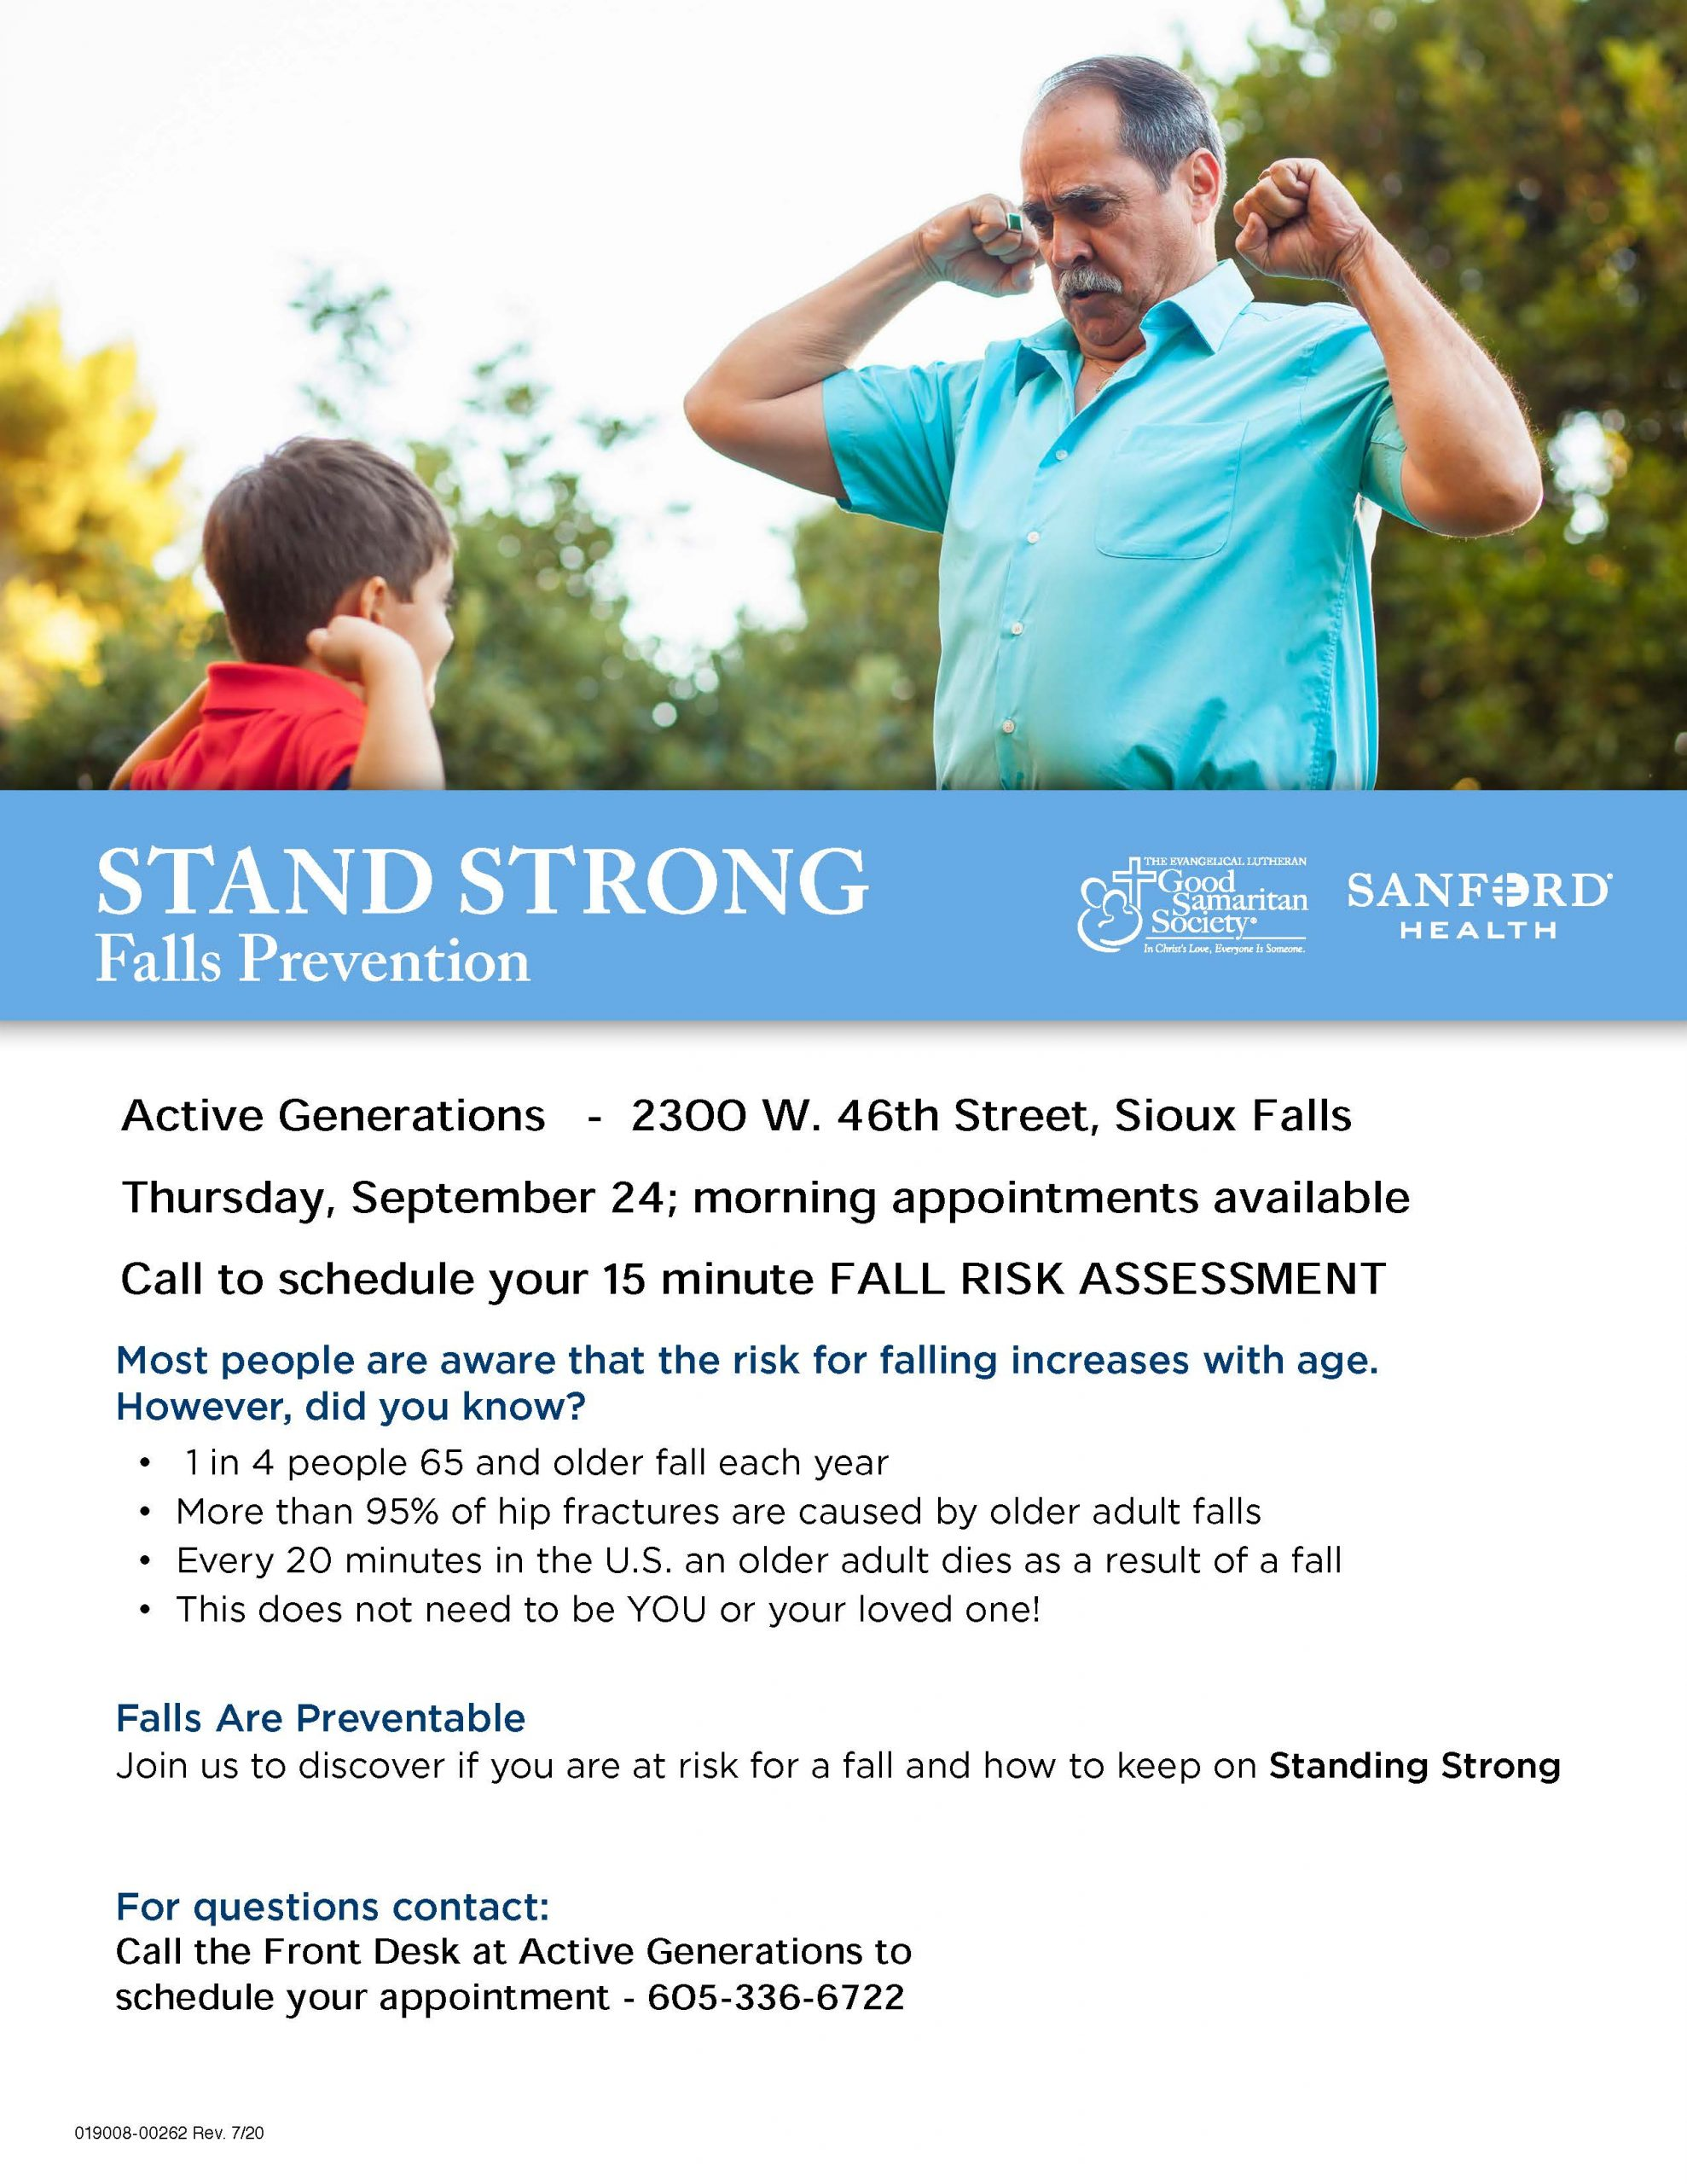 Stand Strong Falls Prevention